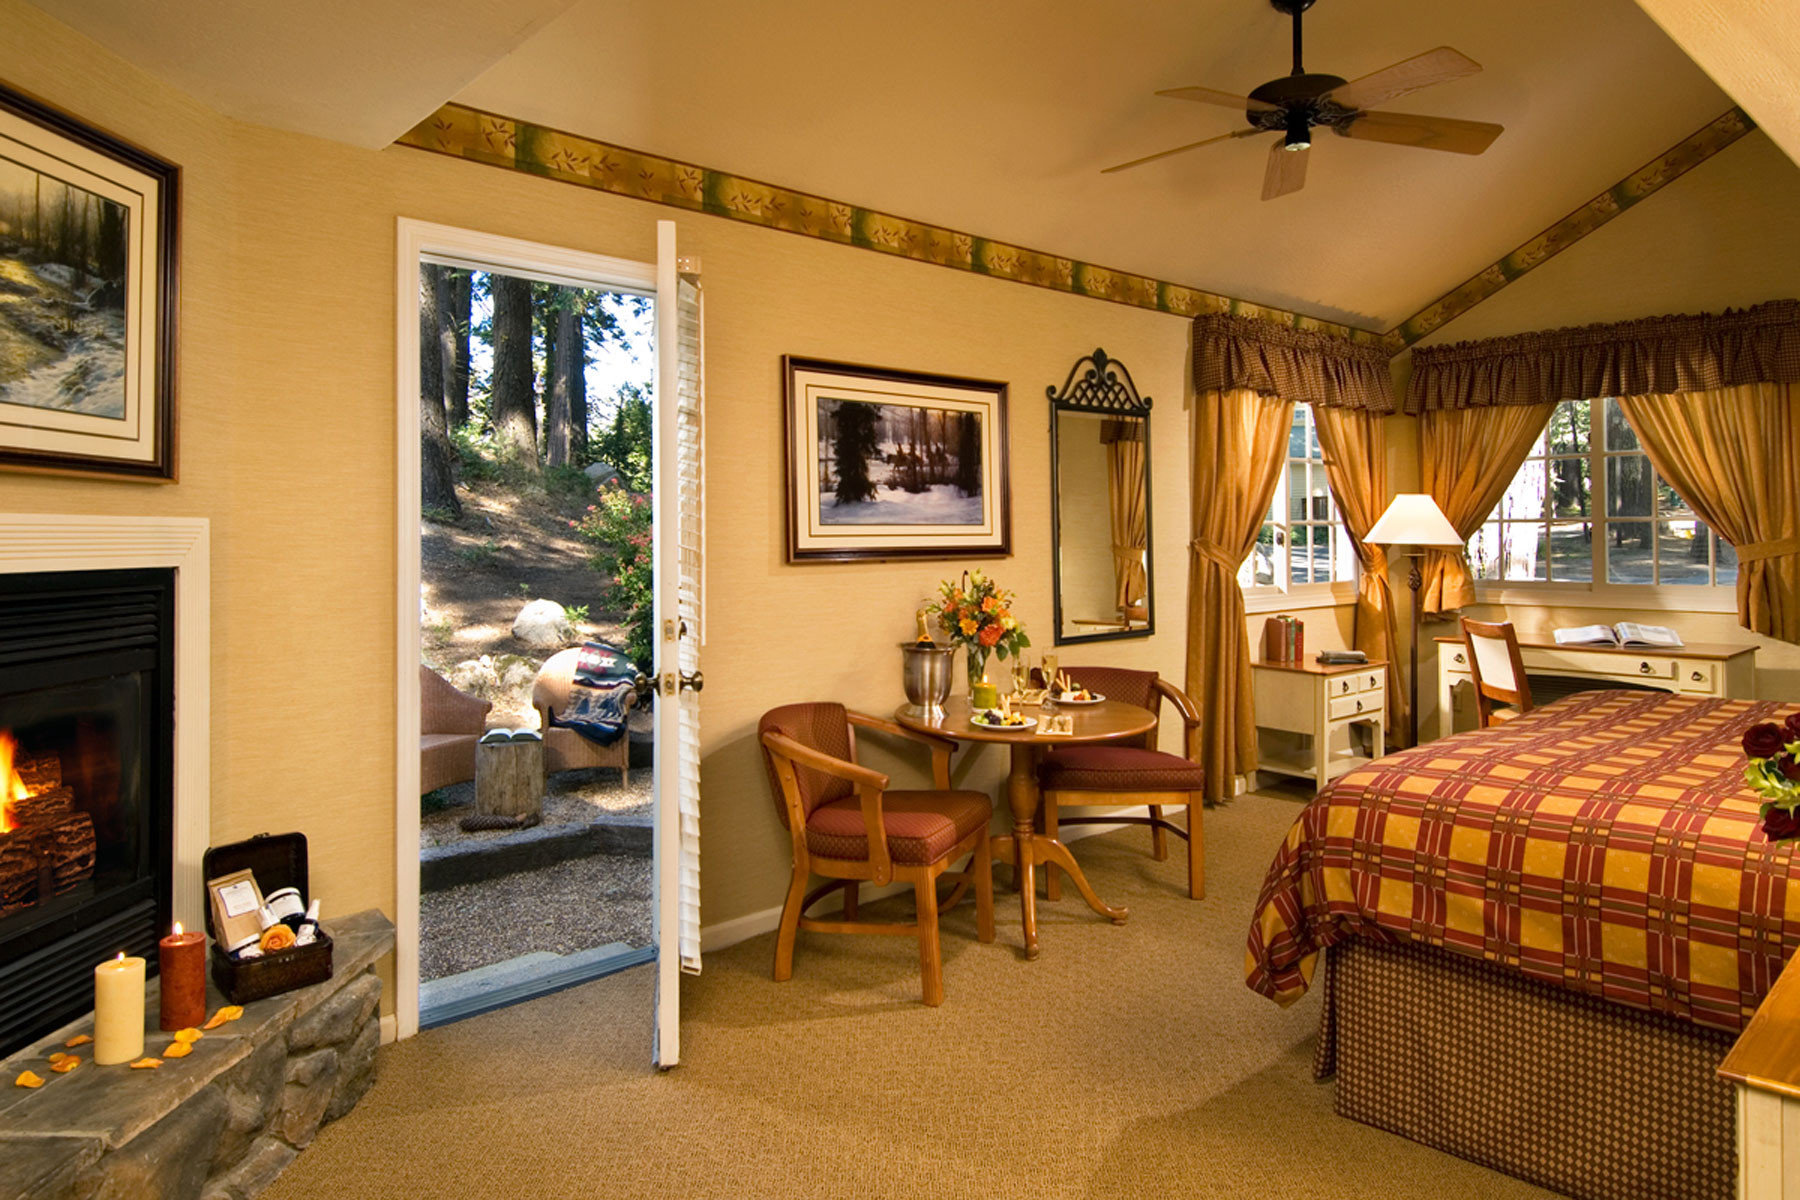 Bedroom Country Fireplace Lodge Patio Rustic property recreation room home living room Villa cottage Resort mansion